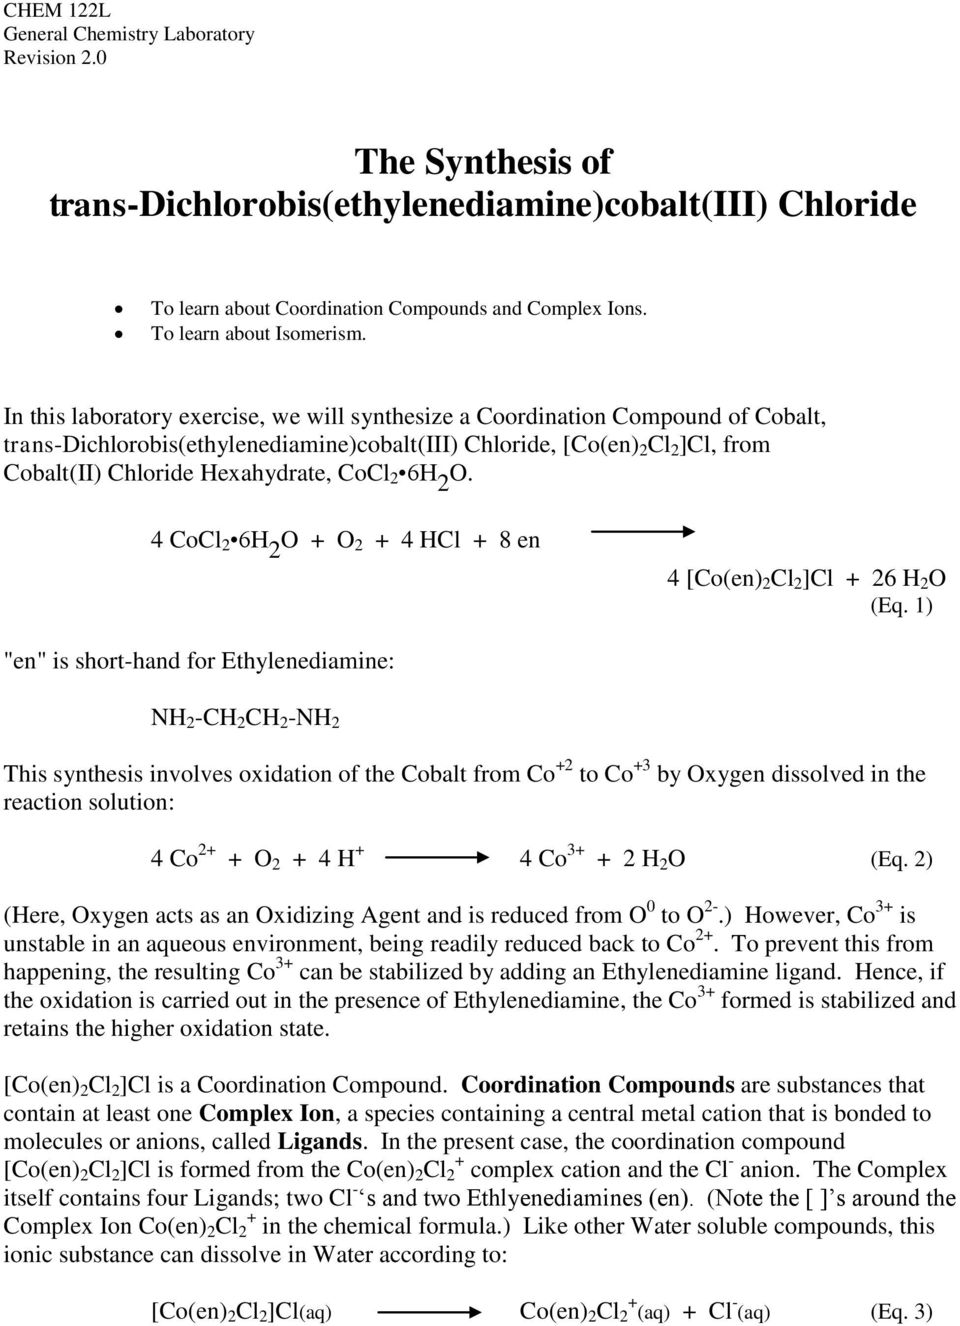 In this laboratory exercise, we will synthesize a Coordination Compound of Cobalt, trans-dichlorobis(ethylenediamine)cobalt(iii) Chloride, [Co(en) 2 Cl 2 ]Cl, from Cobalt(II) Chloride Hexahydrate,